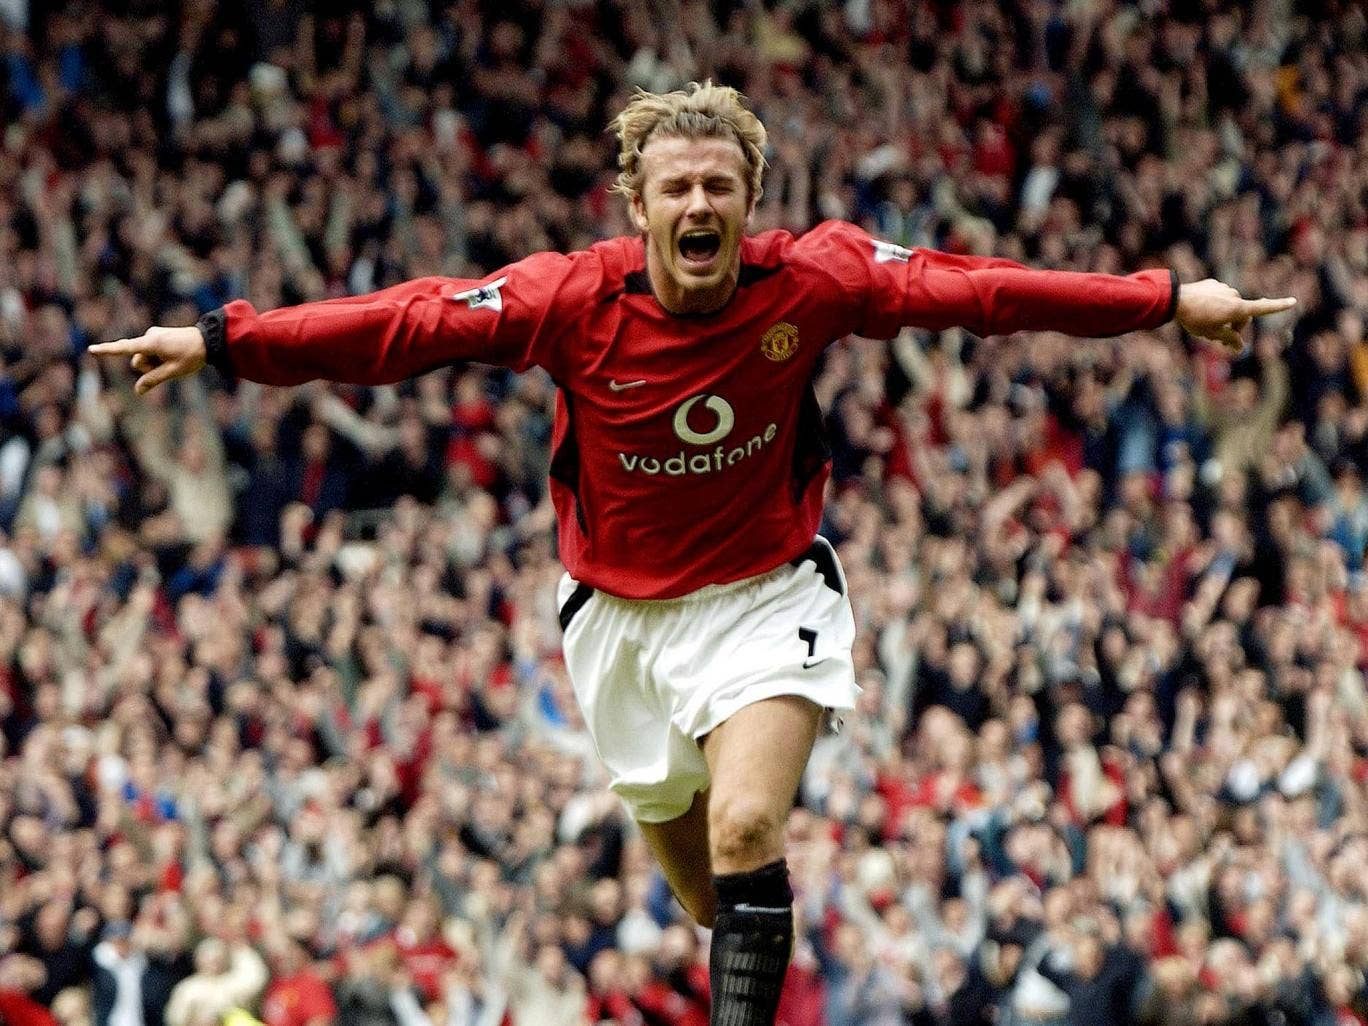 <p><b>David Beckham:</b></p> Beckham began his professional career at United, making his first-team debut in 1992. He won the Premier League title six times, the FA Cup twice, and the Champions League once. Beckham was the first choice on the right-wing t